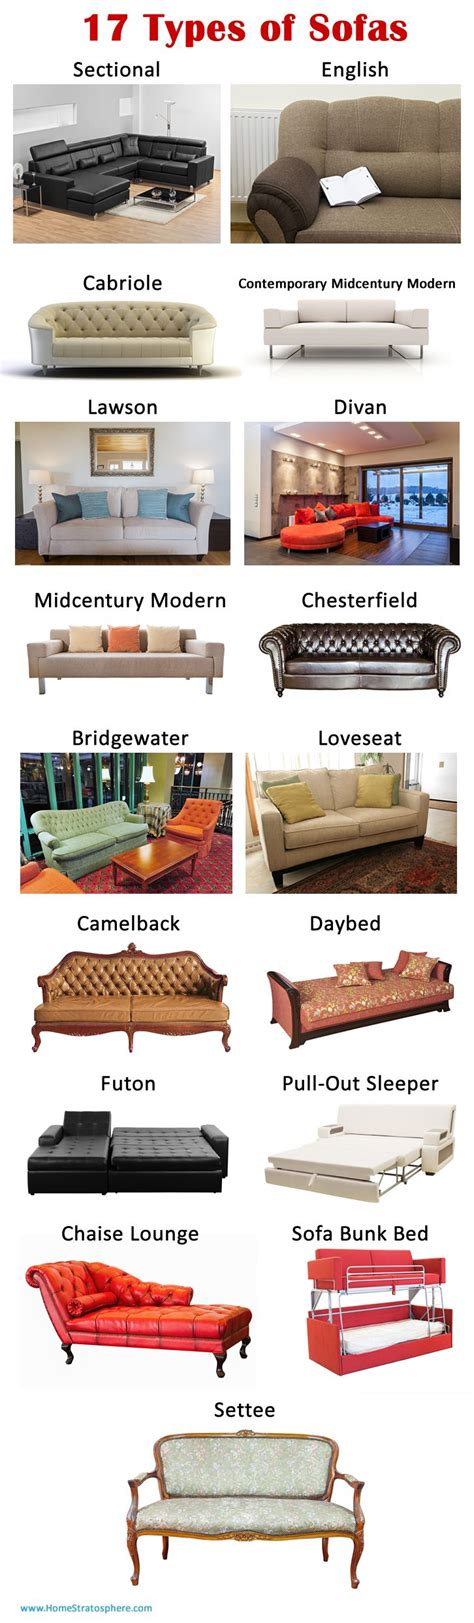 Living Room Furniture Names Names Of Living Room Furniture